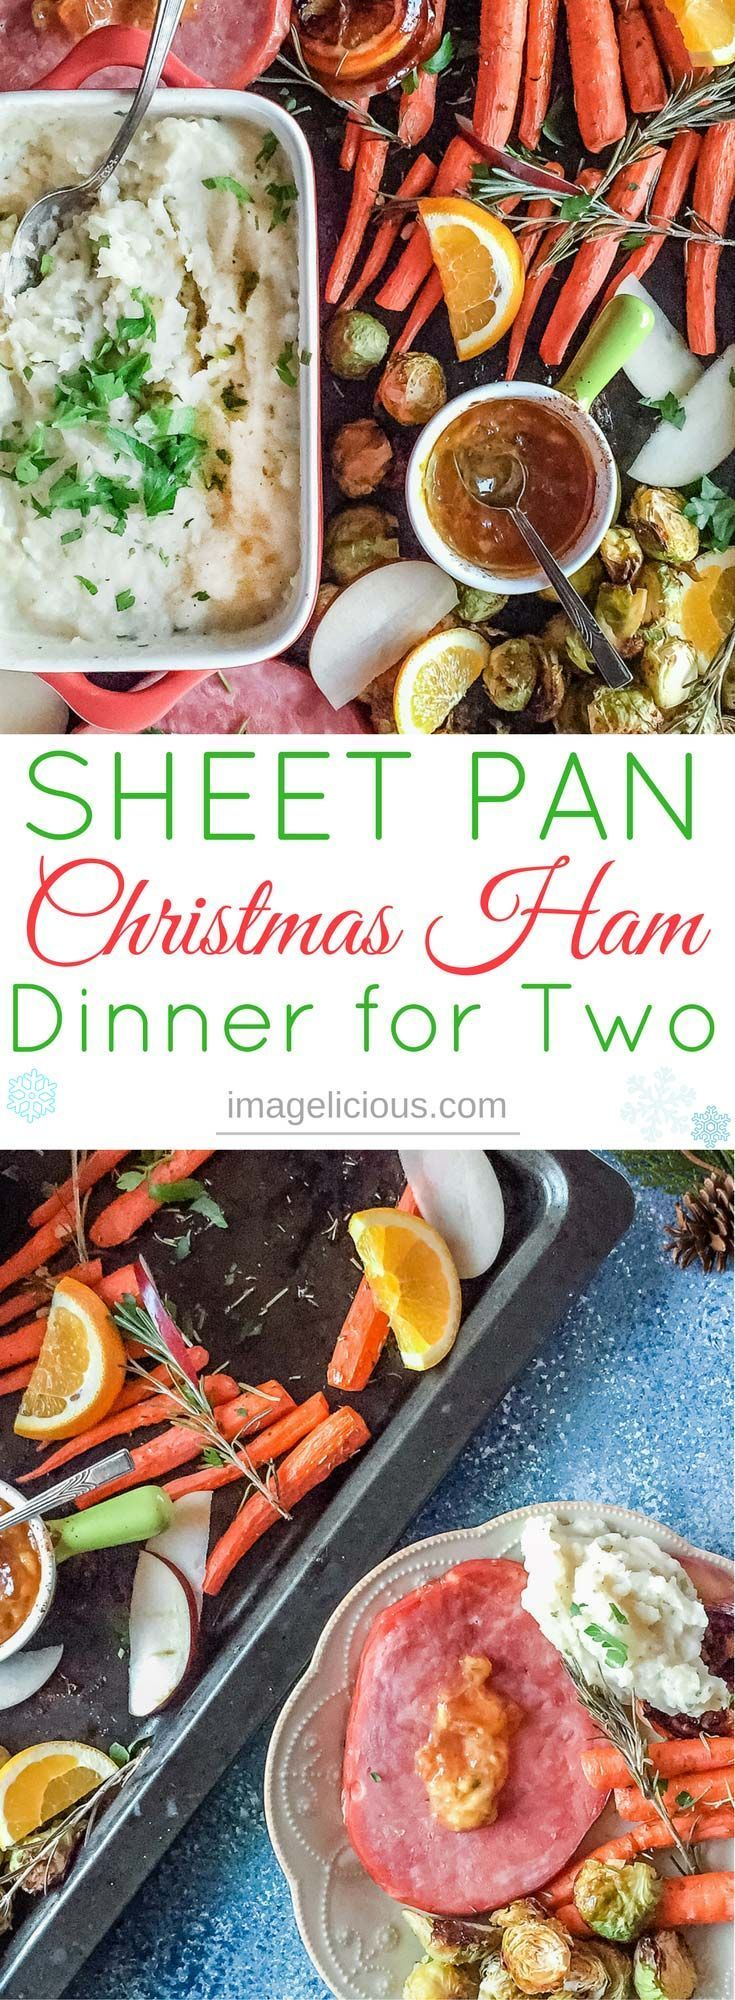 Sheet Pan Christmas Ham Dinner For Two takes one hour. Ham steaks, apple sauce, carrots, Brussels sprouts, and mashed potatoes are made in the oven.